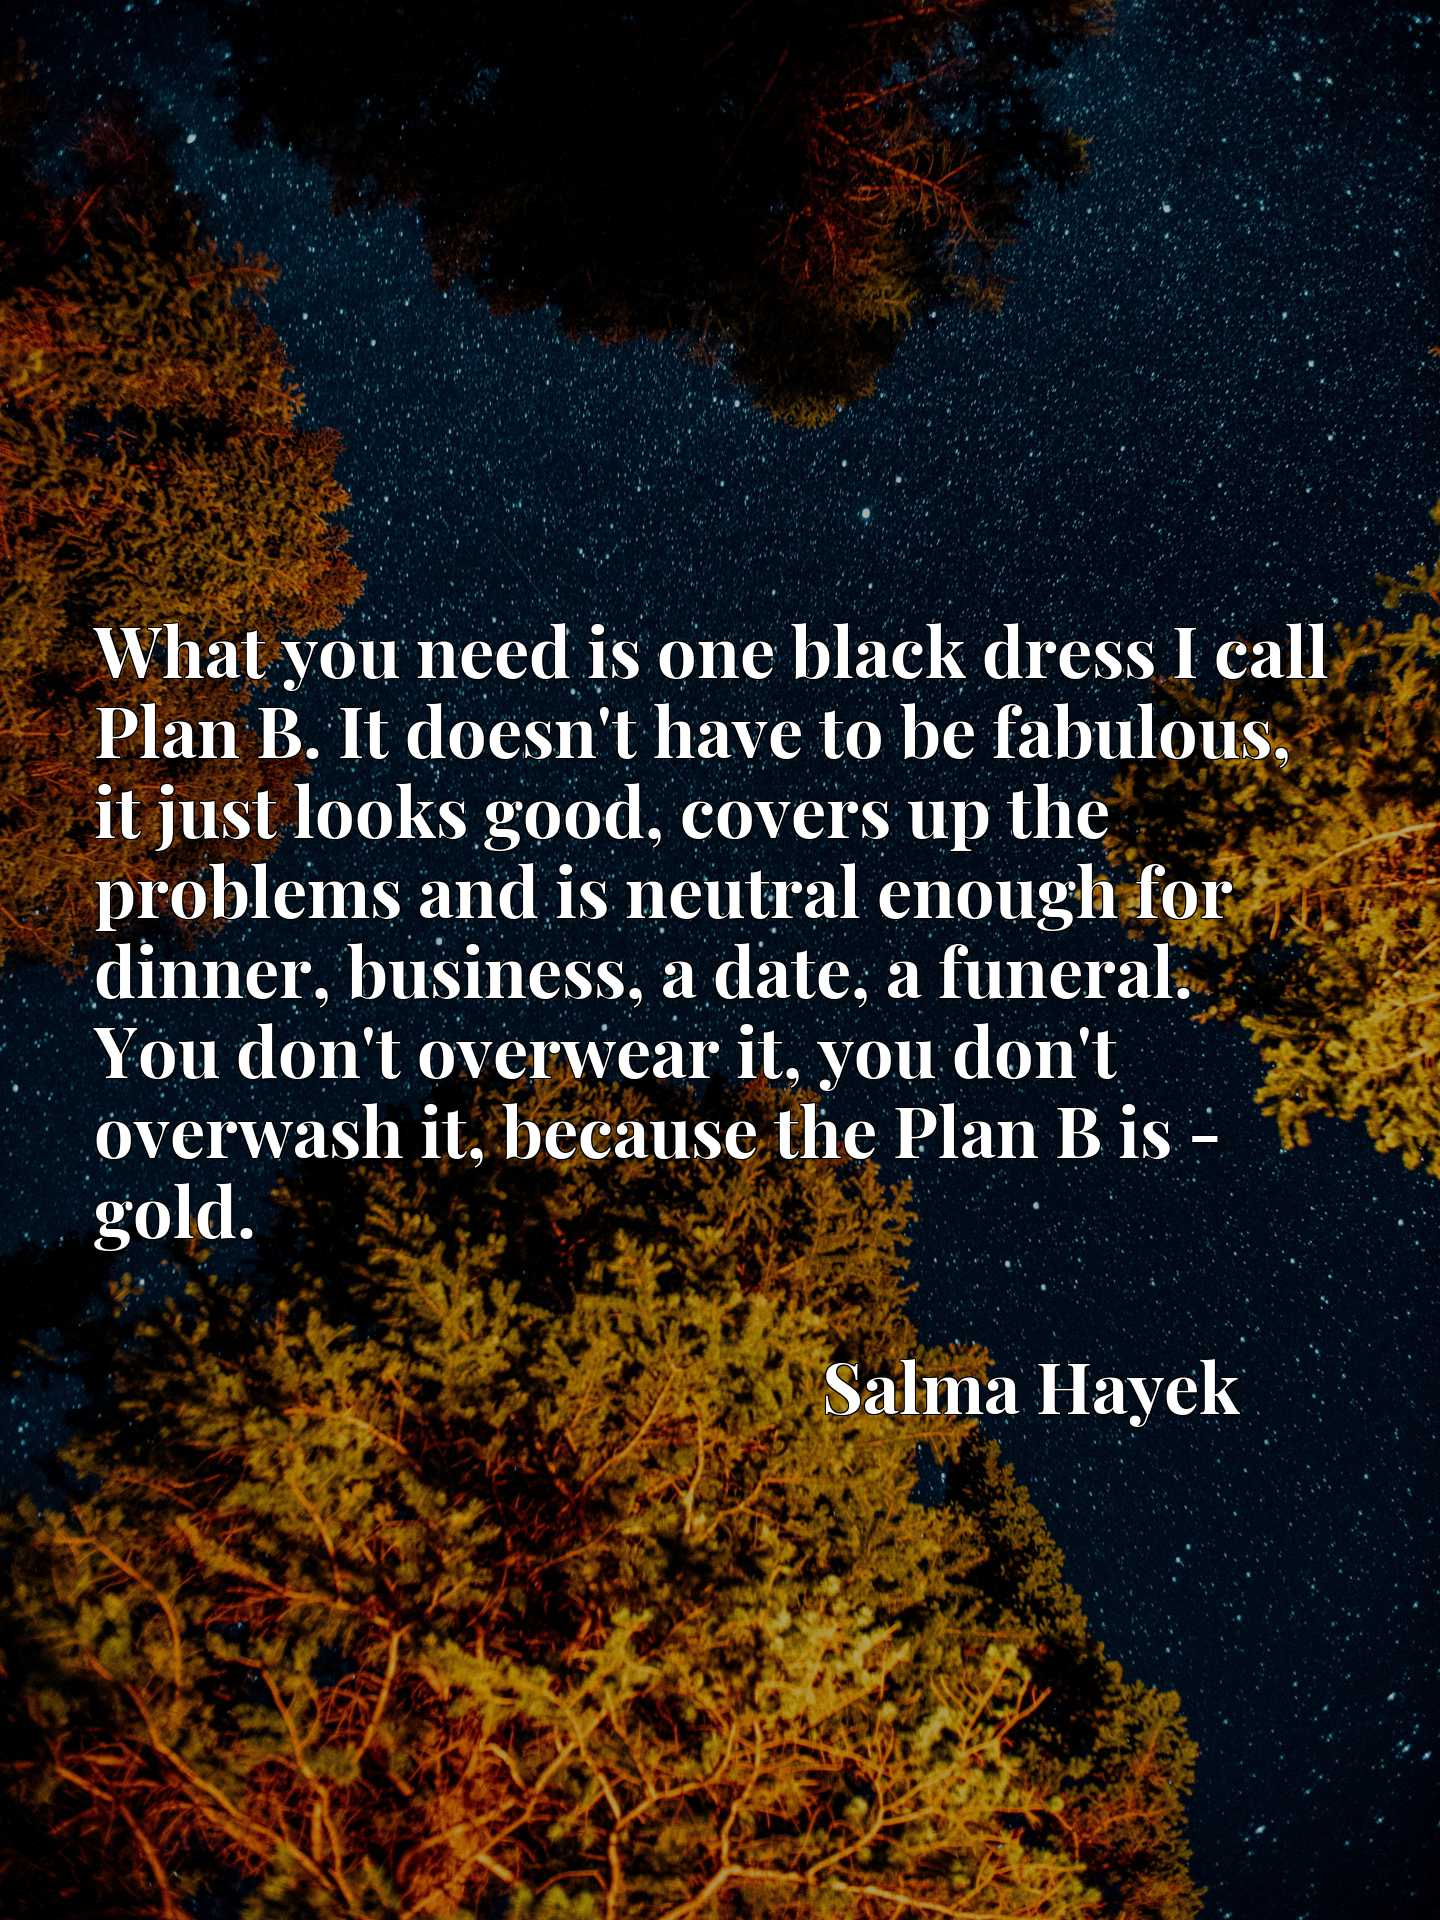 What you need is one black dress I call Plan B. It doesn't have to be fabulous, it just looks good, covers up the problems and is neutral enough for dinner, business, a date, a funeral. You don't overwear it, you don't overwash it, because the Plan B is - gold.